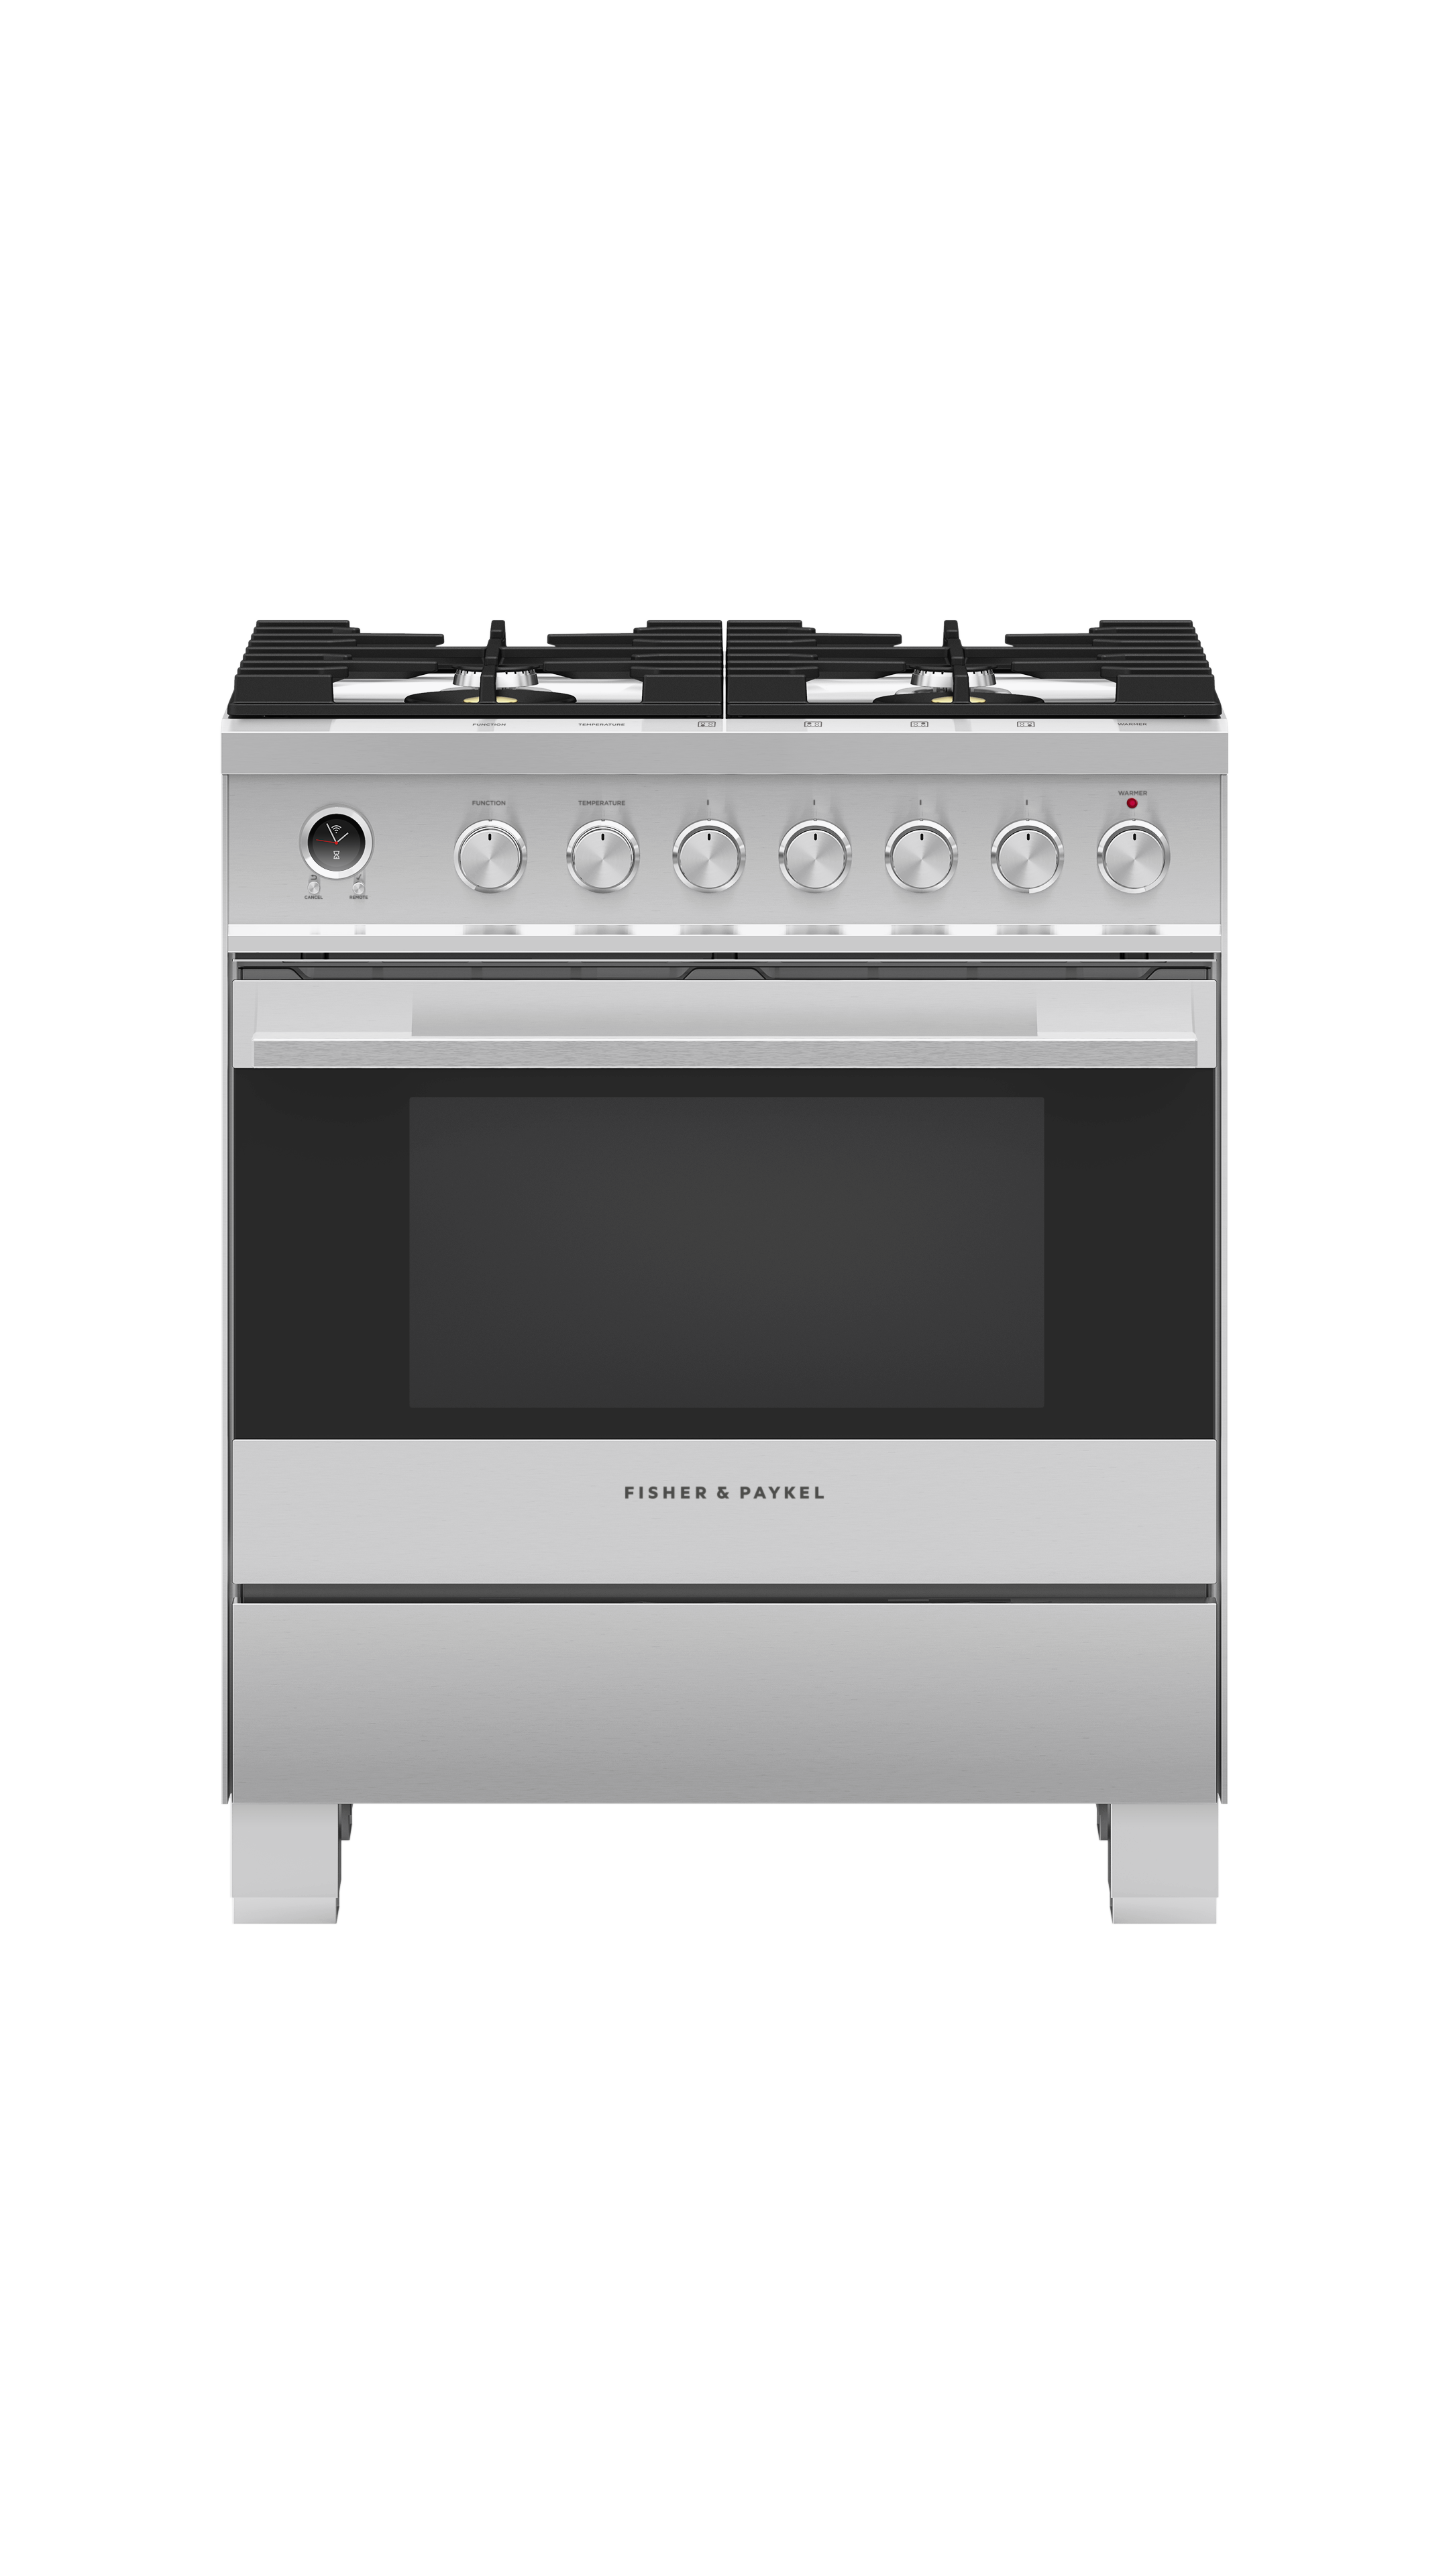 """Model: OR30SDG6X1 